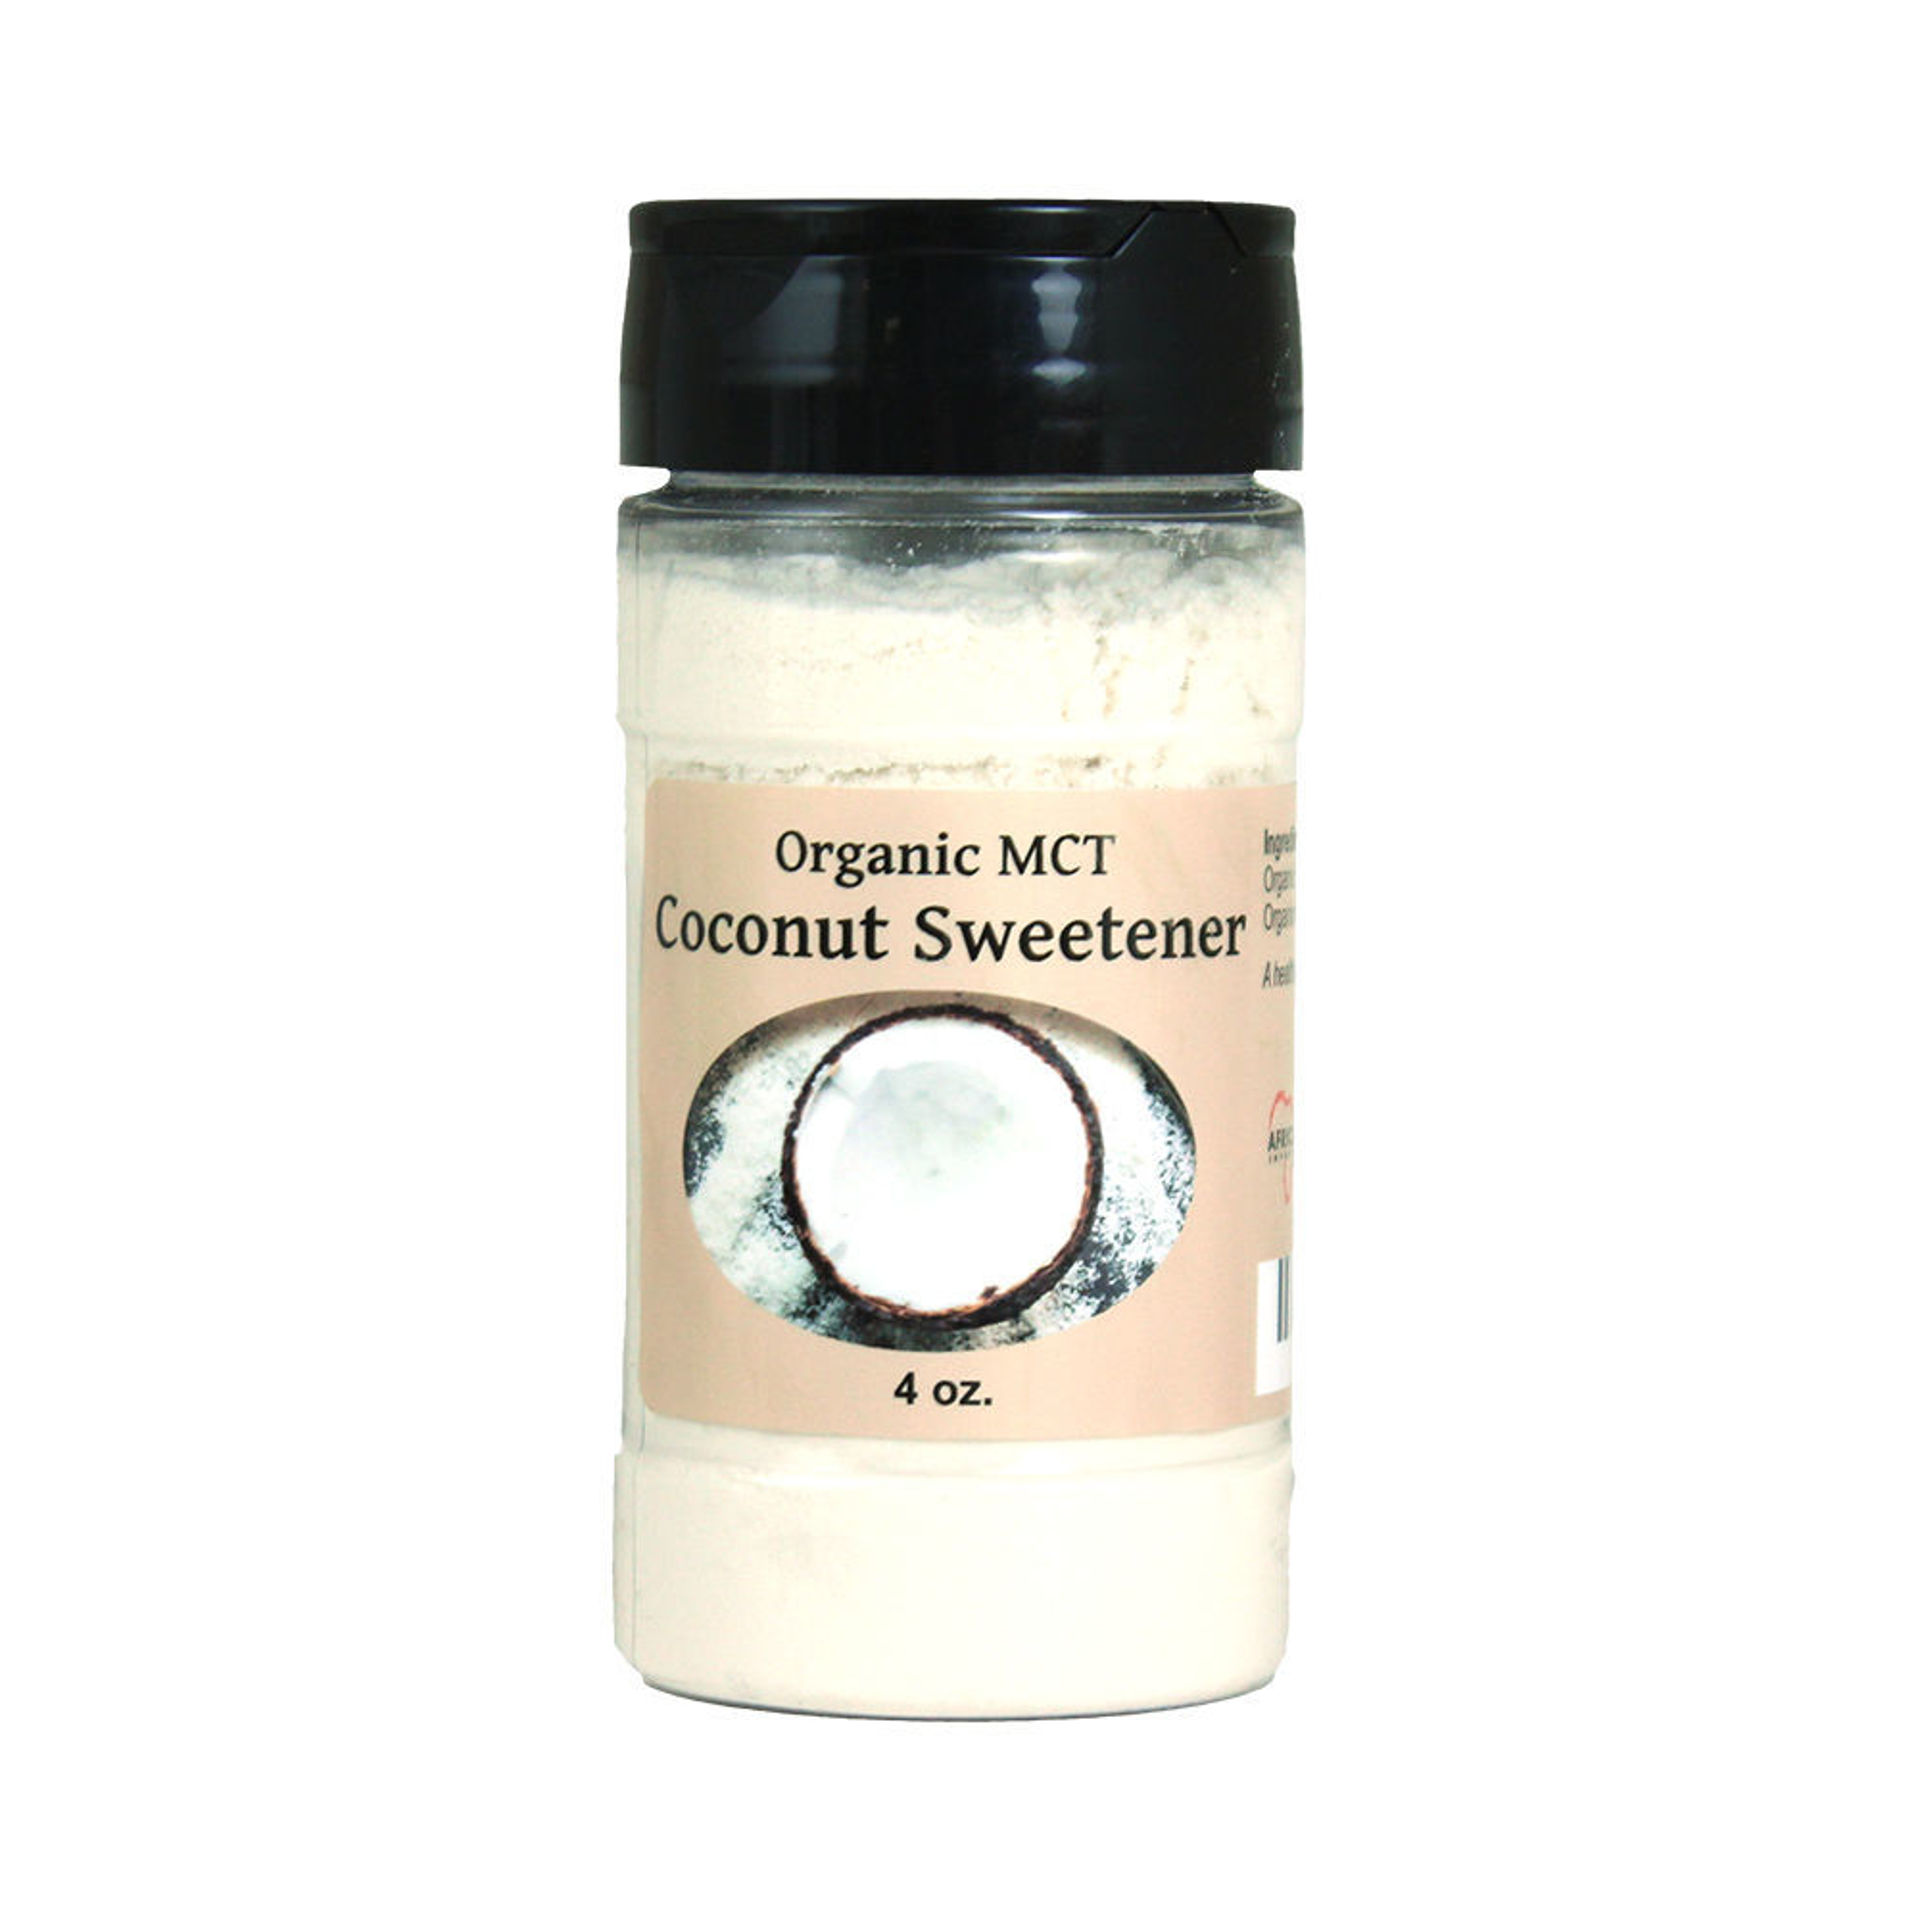 Picture of Organic MCT Coconut Sweetener - 4 oz.